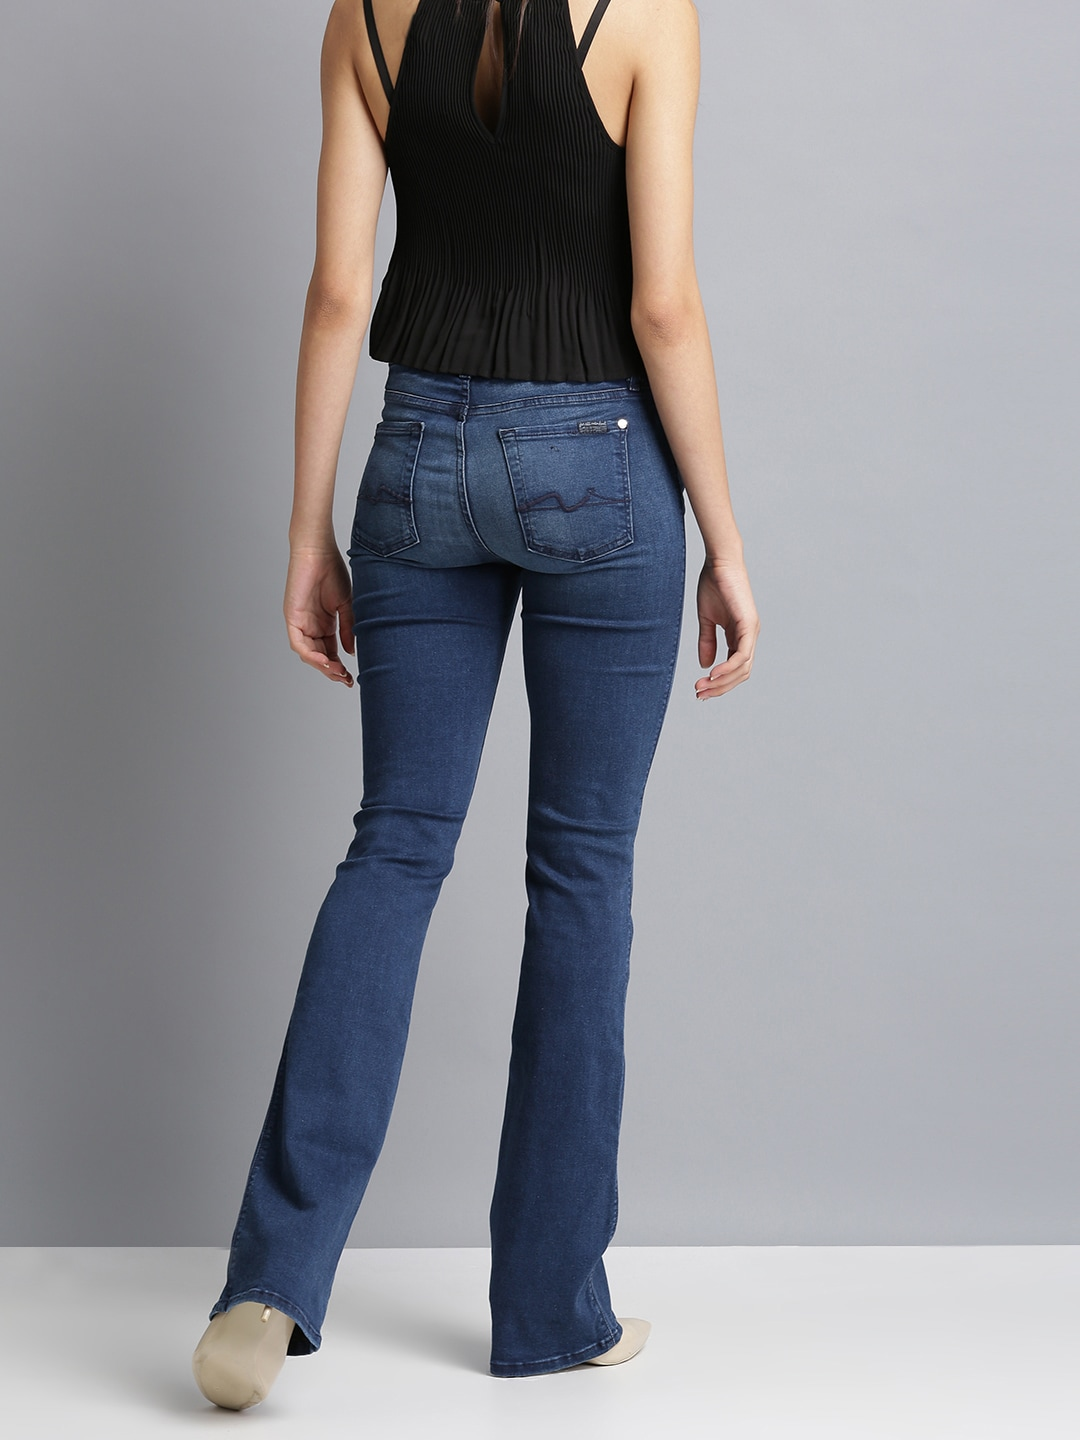 Buy Bootcut Jeans | Jeans To